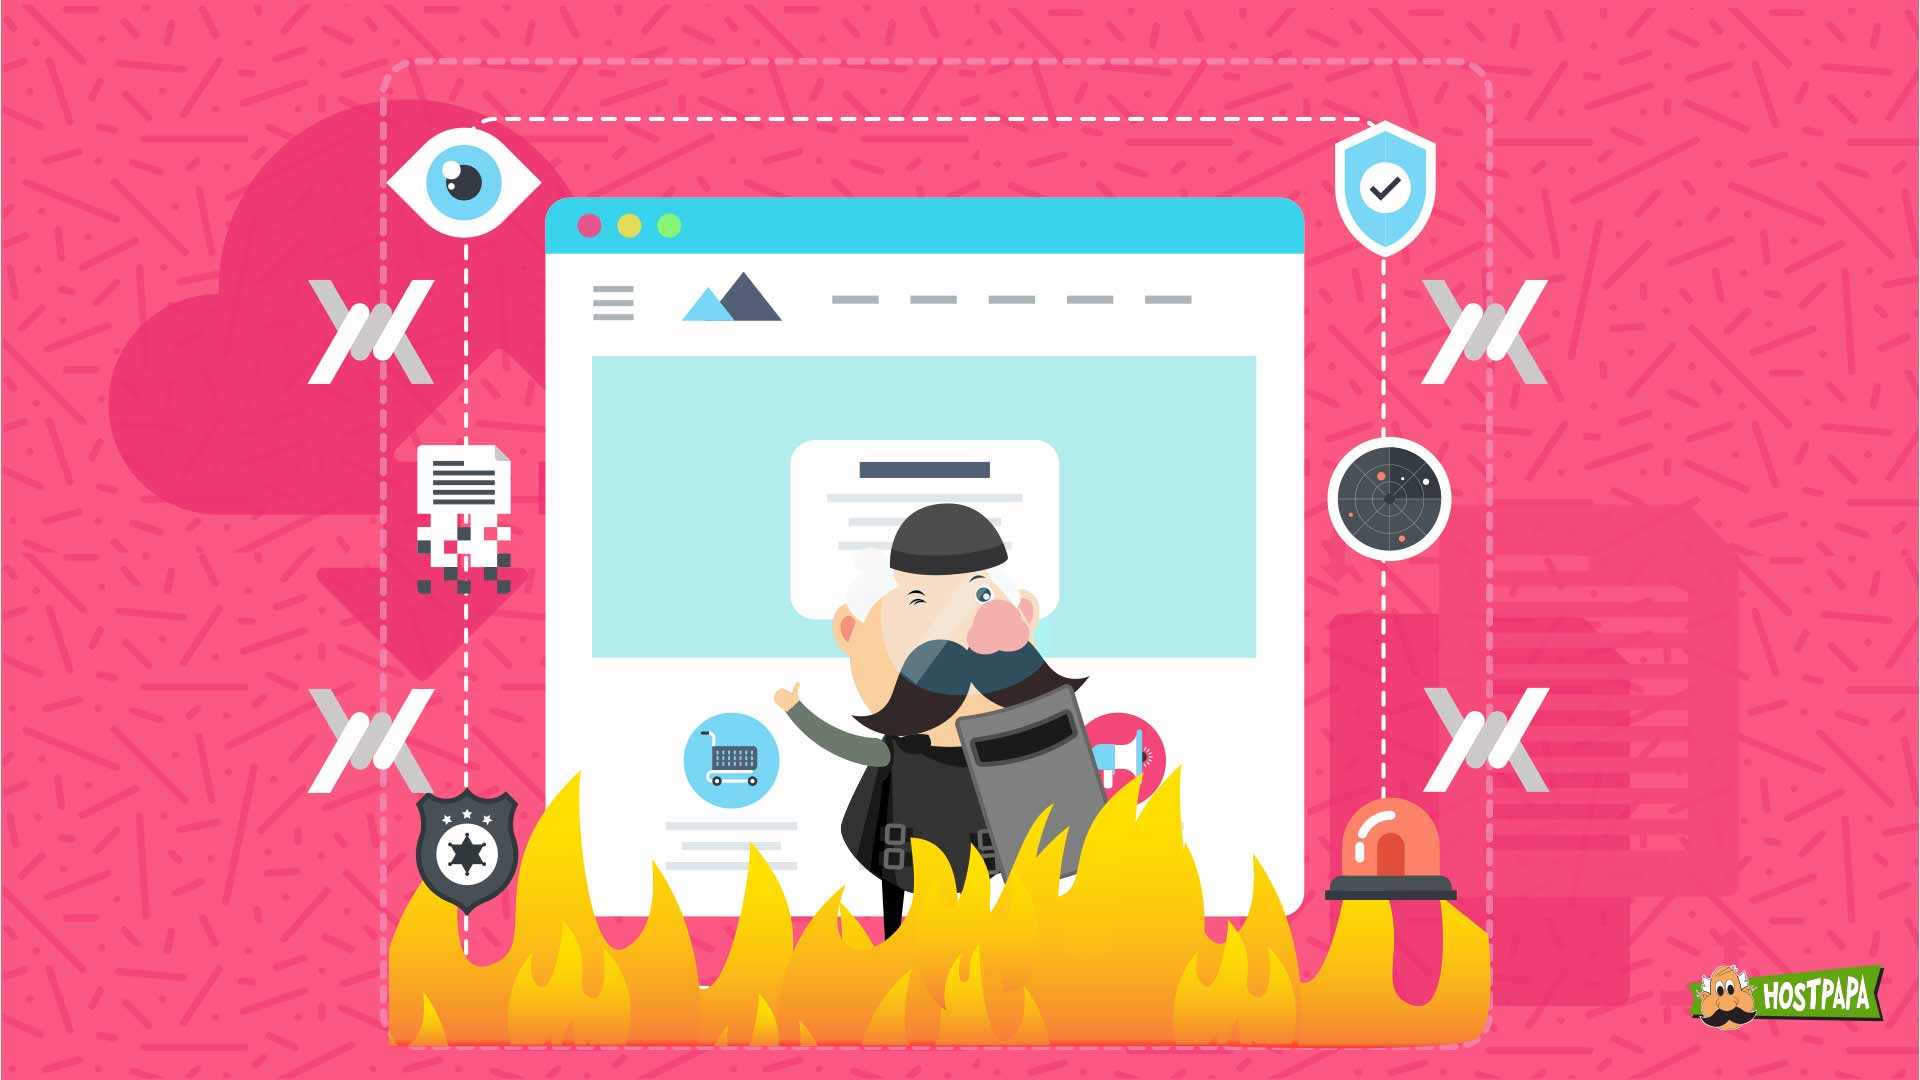 Why do you need a firewall for your website